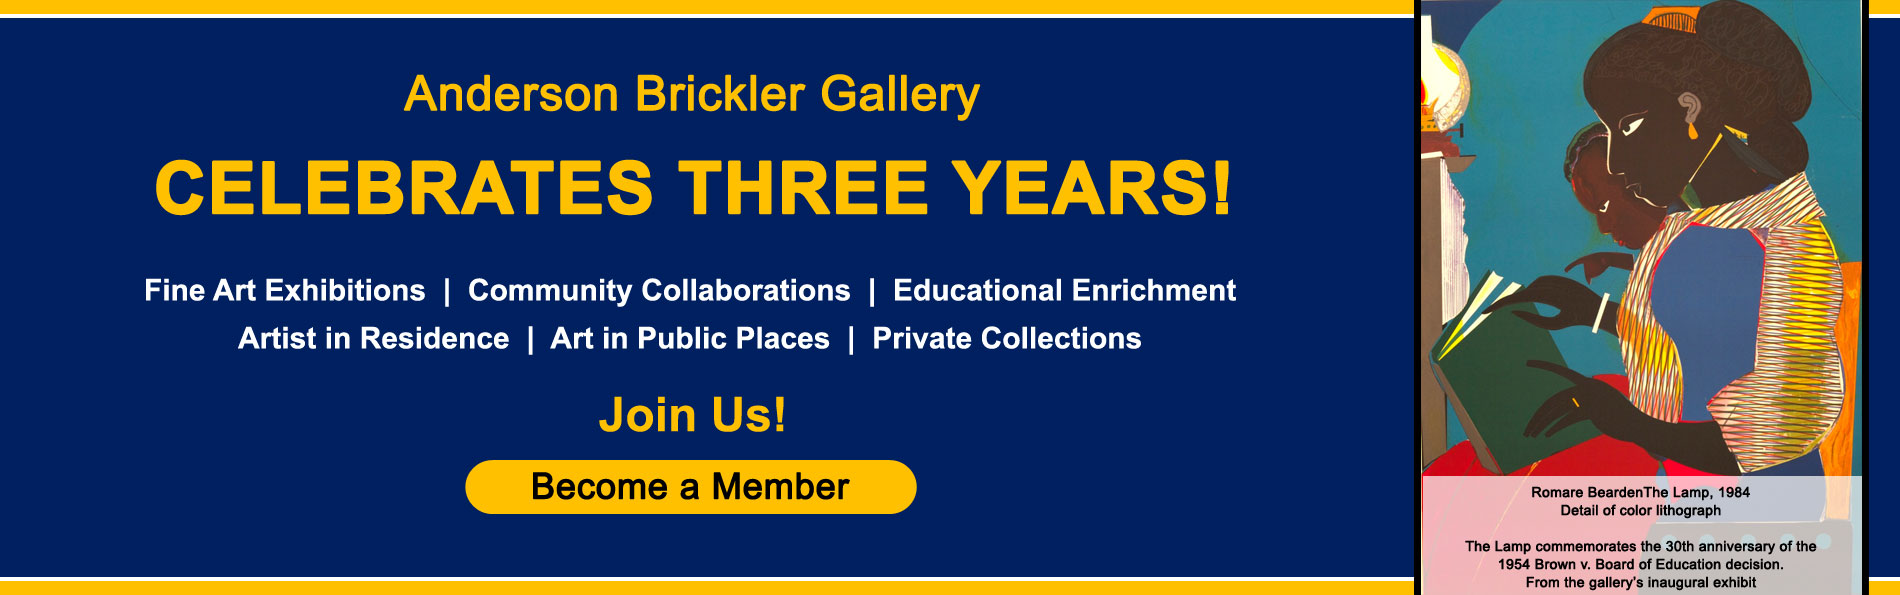 Anderson Brickler Gallery celebrates 3 years